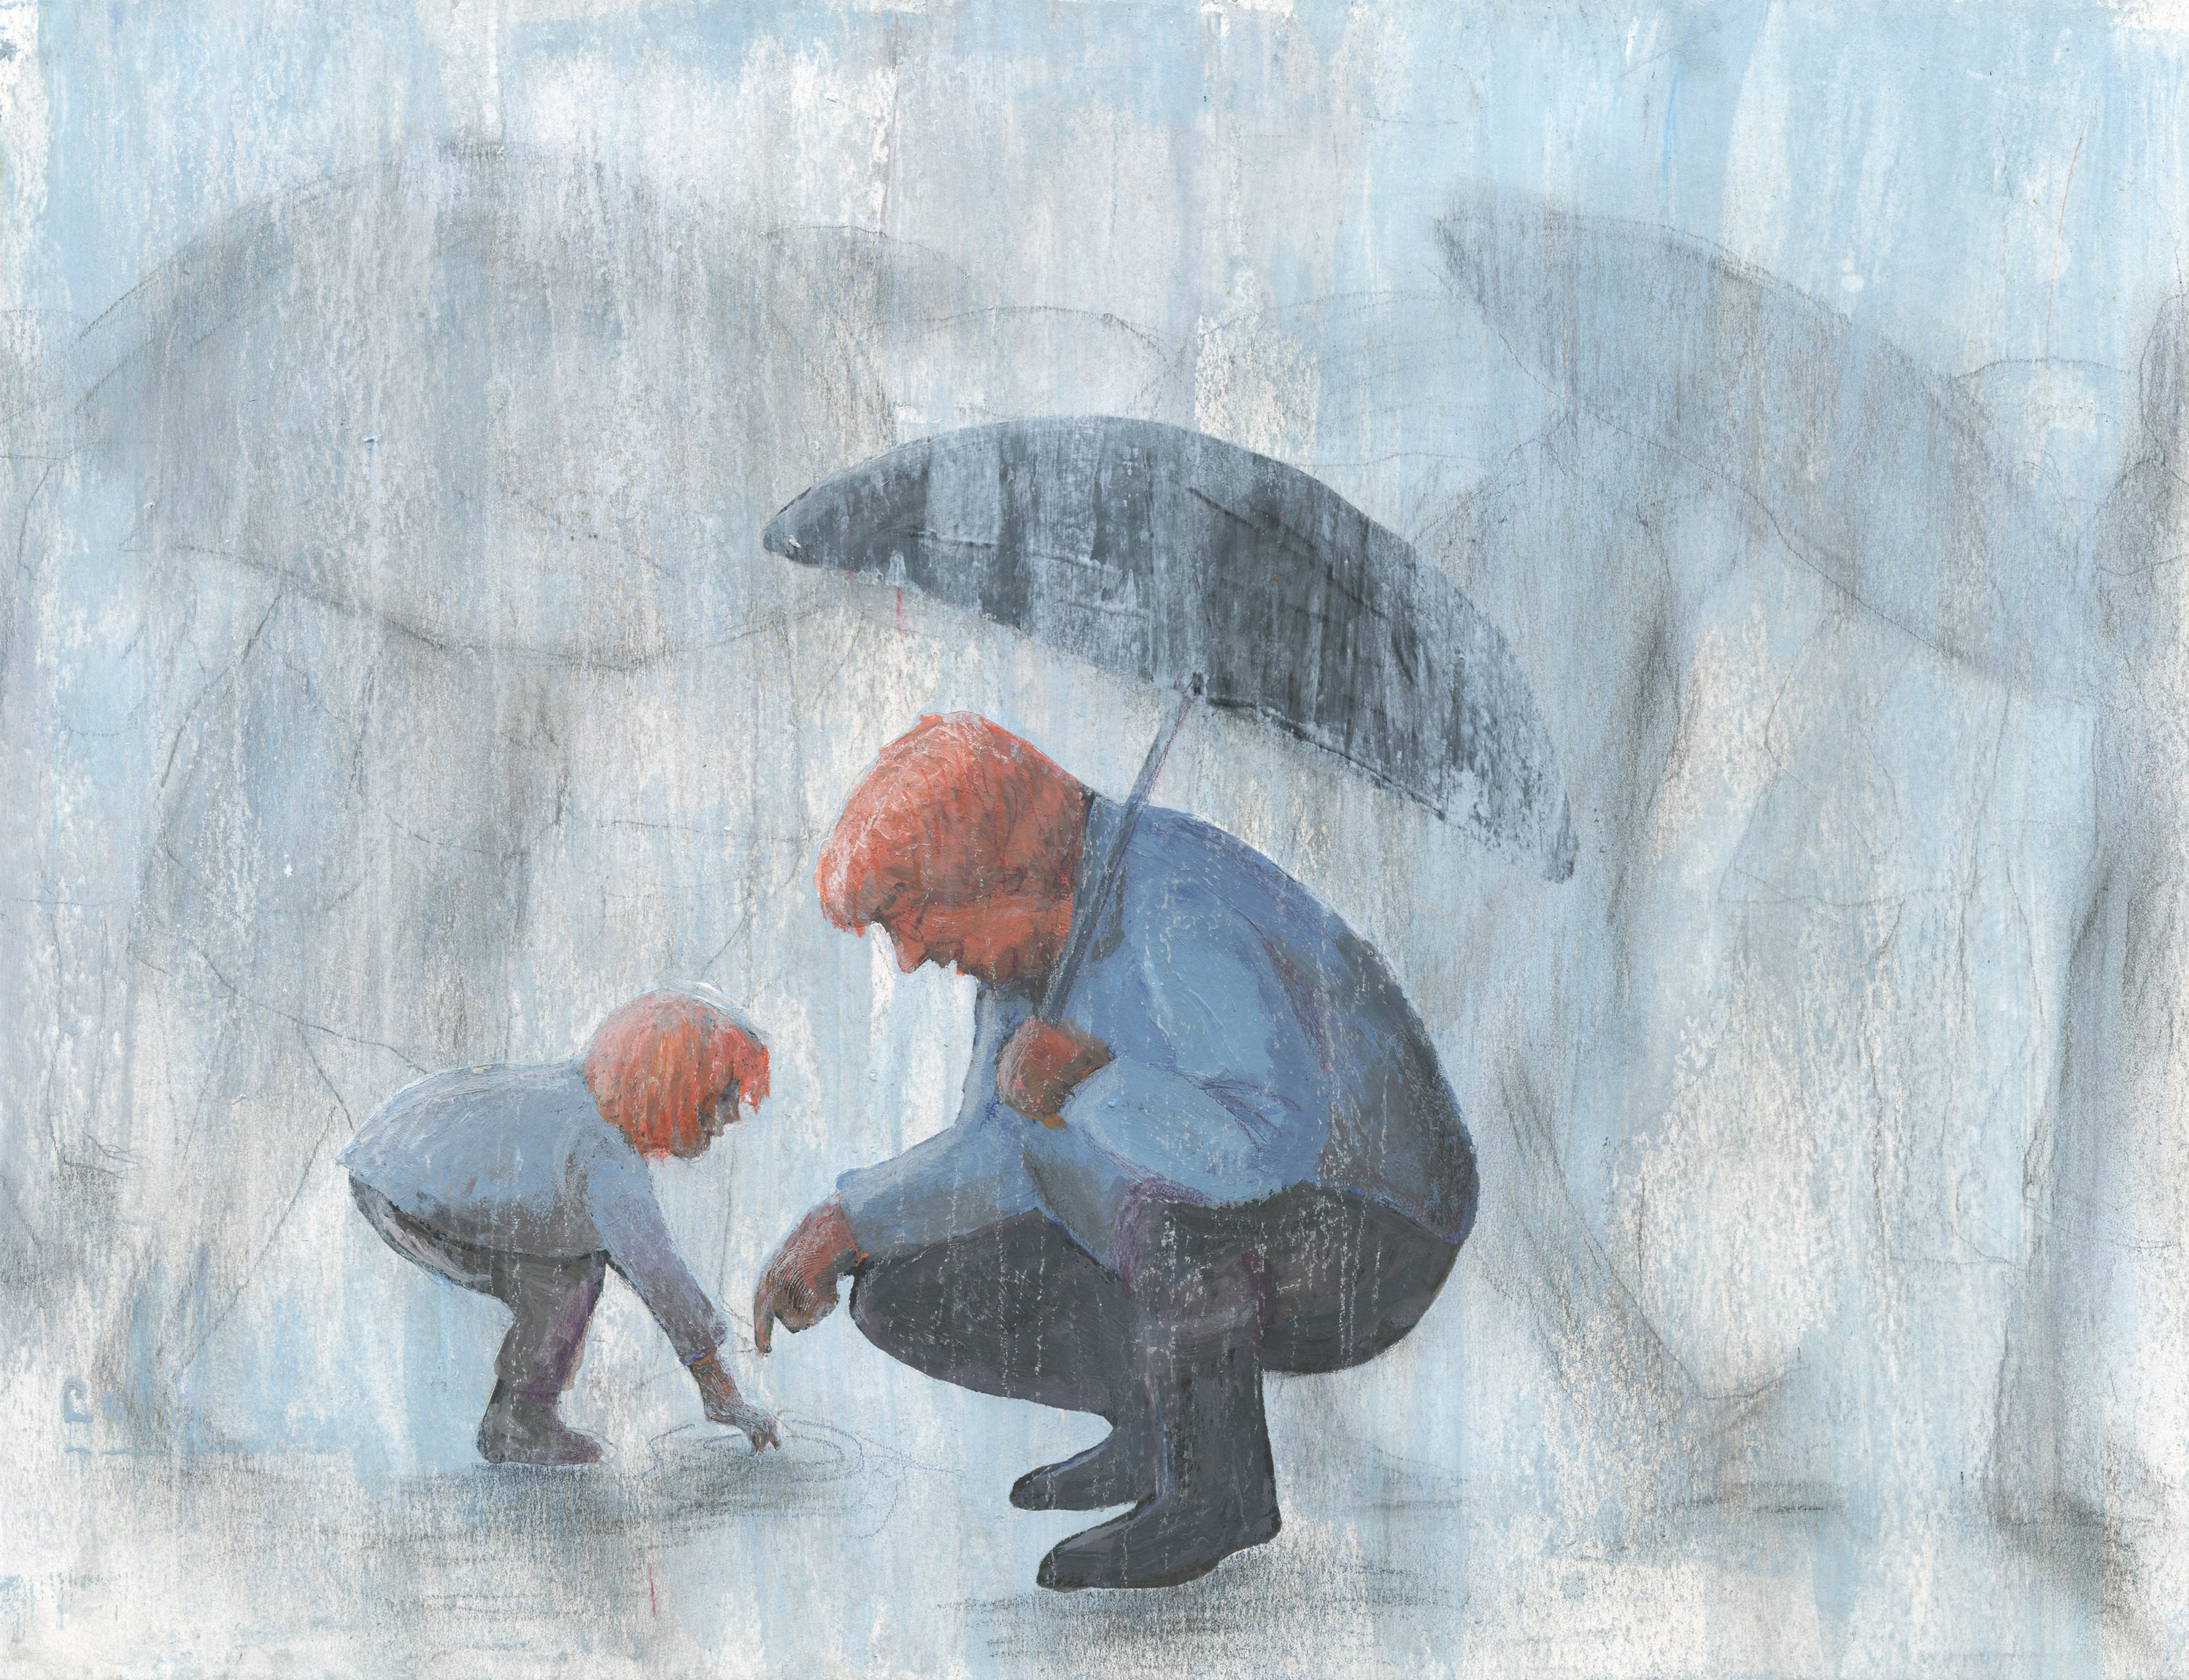 Grandson and grandfather in the rain by Ellen Vesters Illustrator